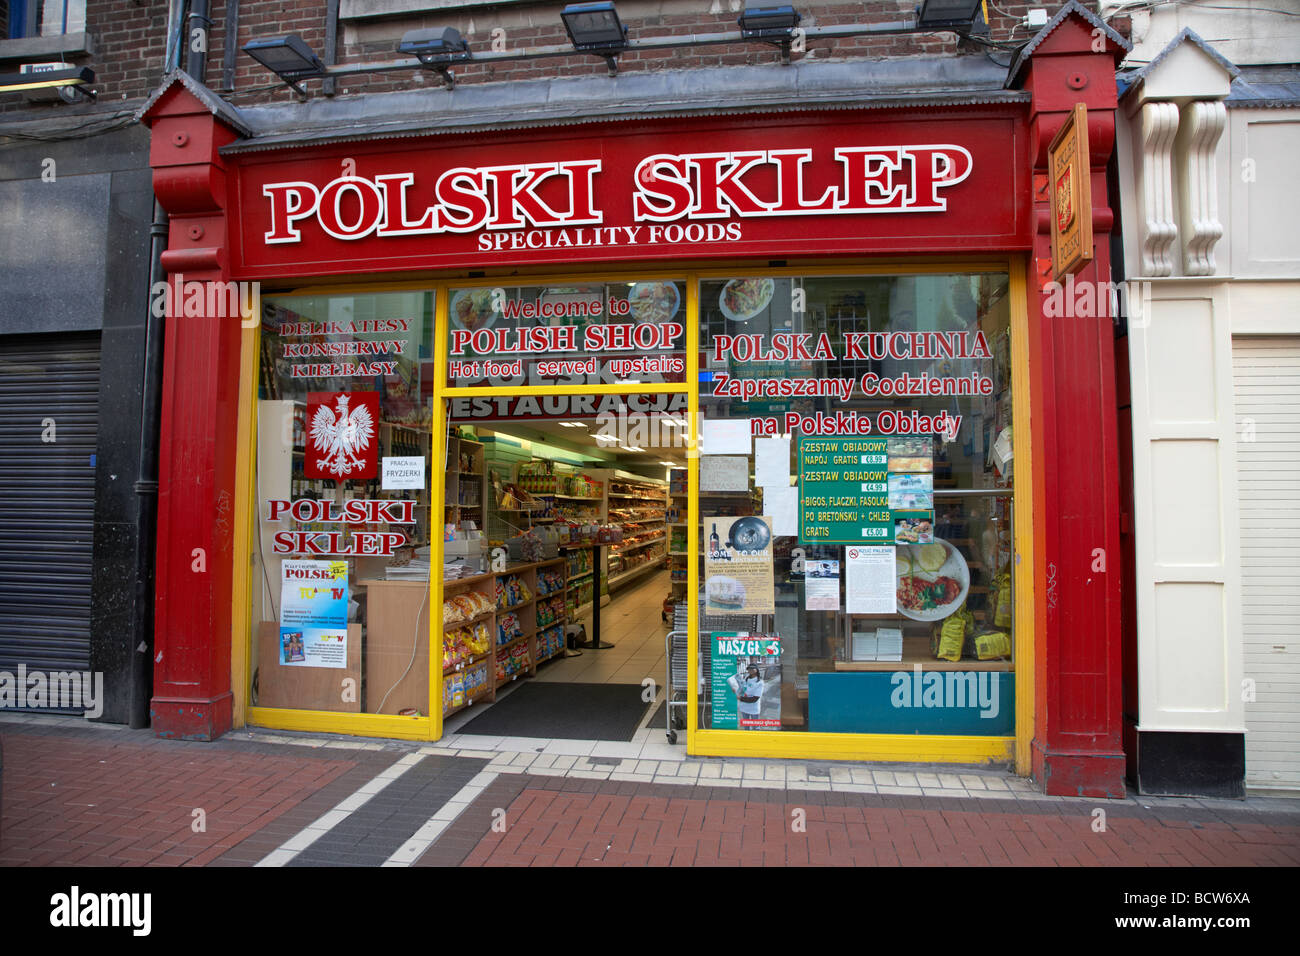 Polish Shop Selling Speciality Eastern European Foods For Immigrants Stock Photo Royalty Free